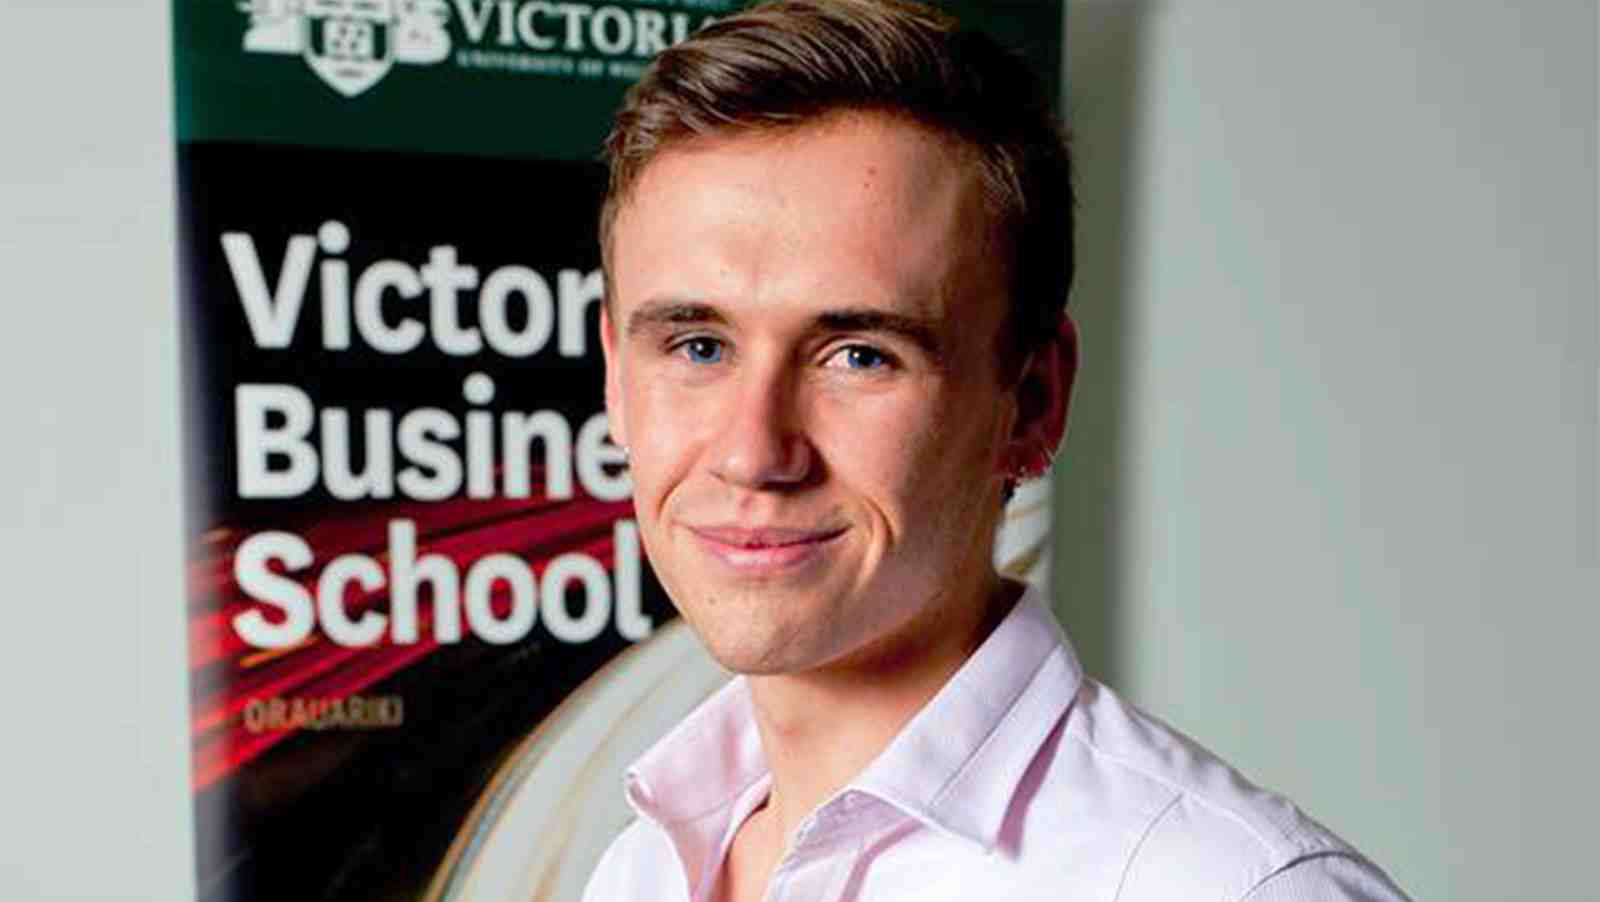 A profile image of PhD graduate in Marketing, Hamish Simmonds.